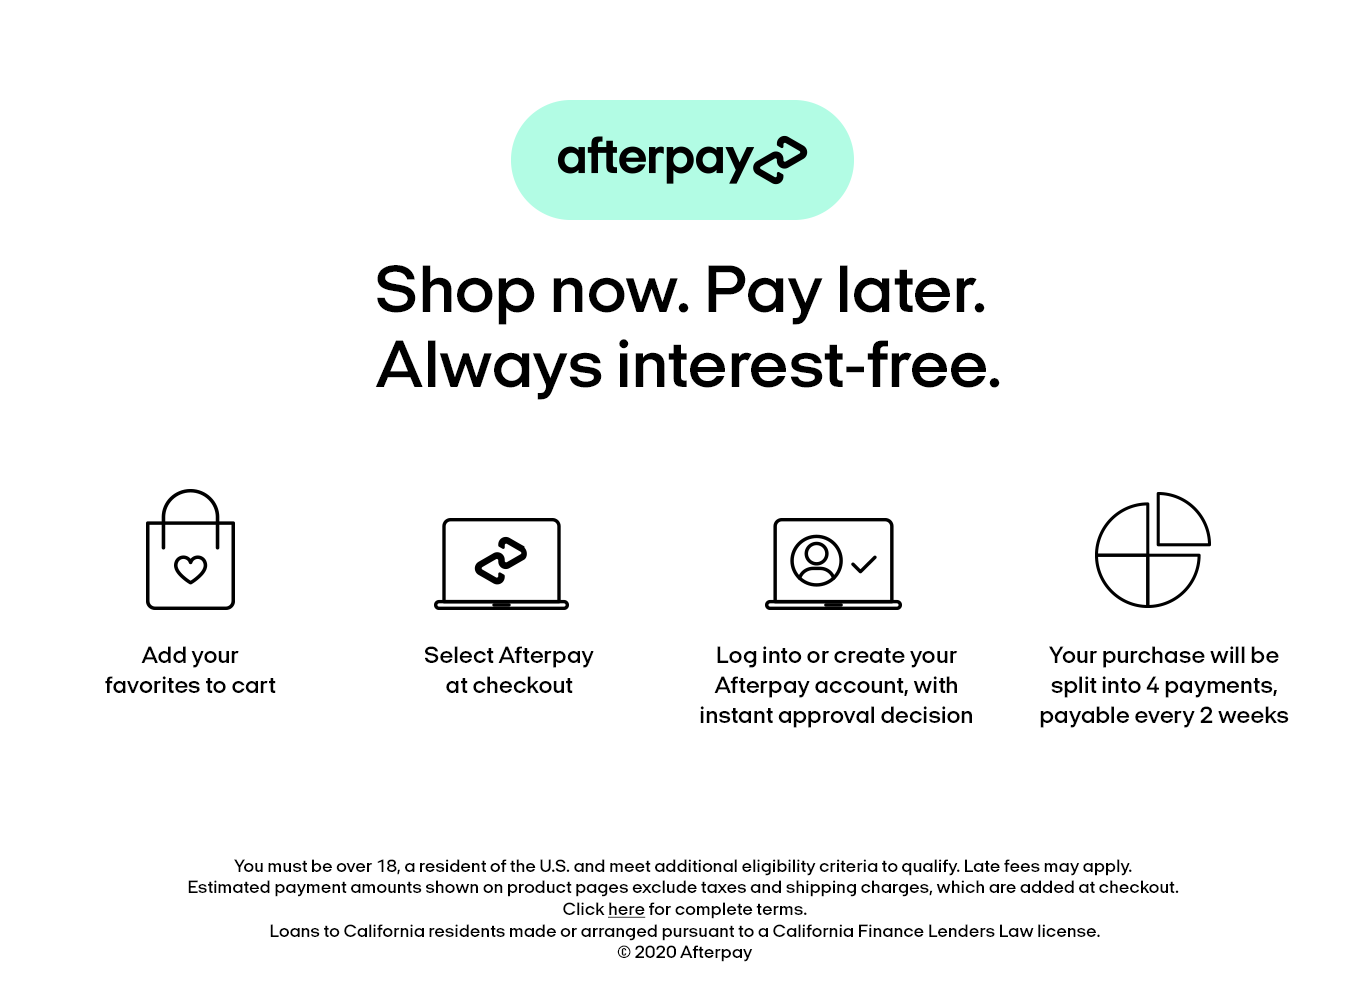 Afterpay Infographic - Add your item to your cart. Select Afterpay payment at checkout. Sign up or login to Afterpay account. Your purchase will be split into 4 payments, payable every 2 weeks.